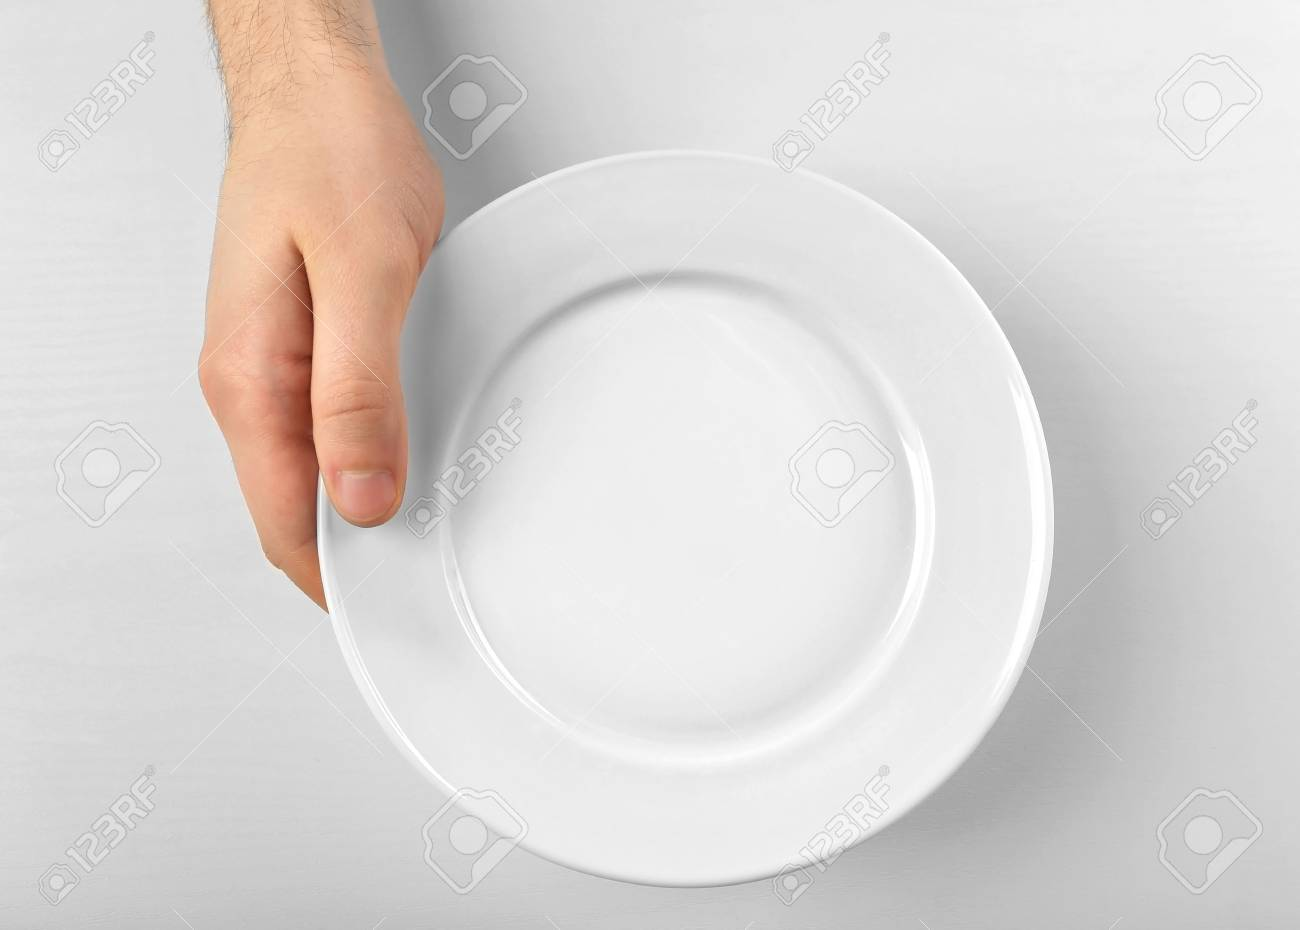 Male hand holding white plate, isolated on white - 95730159